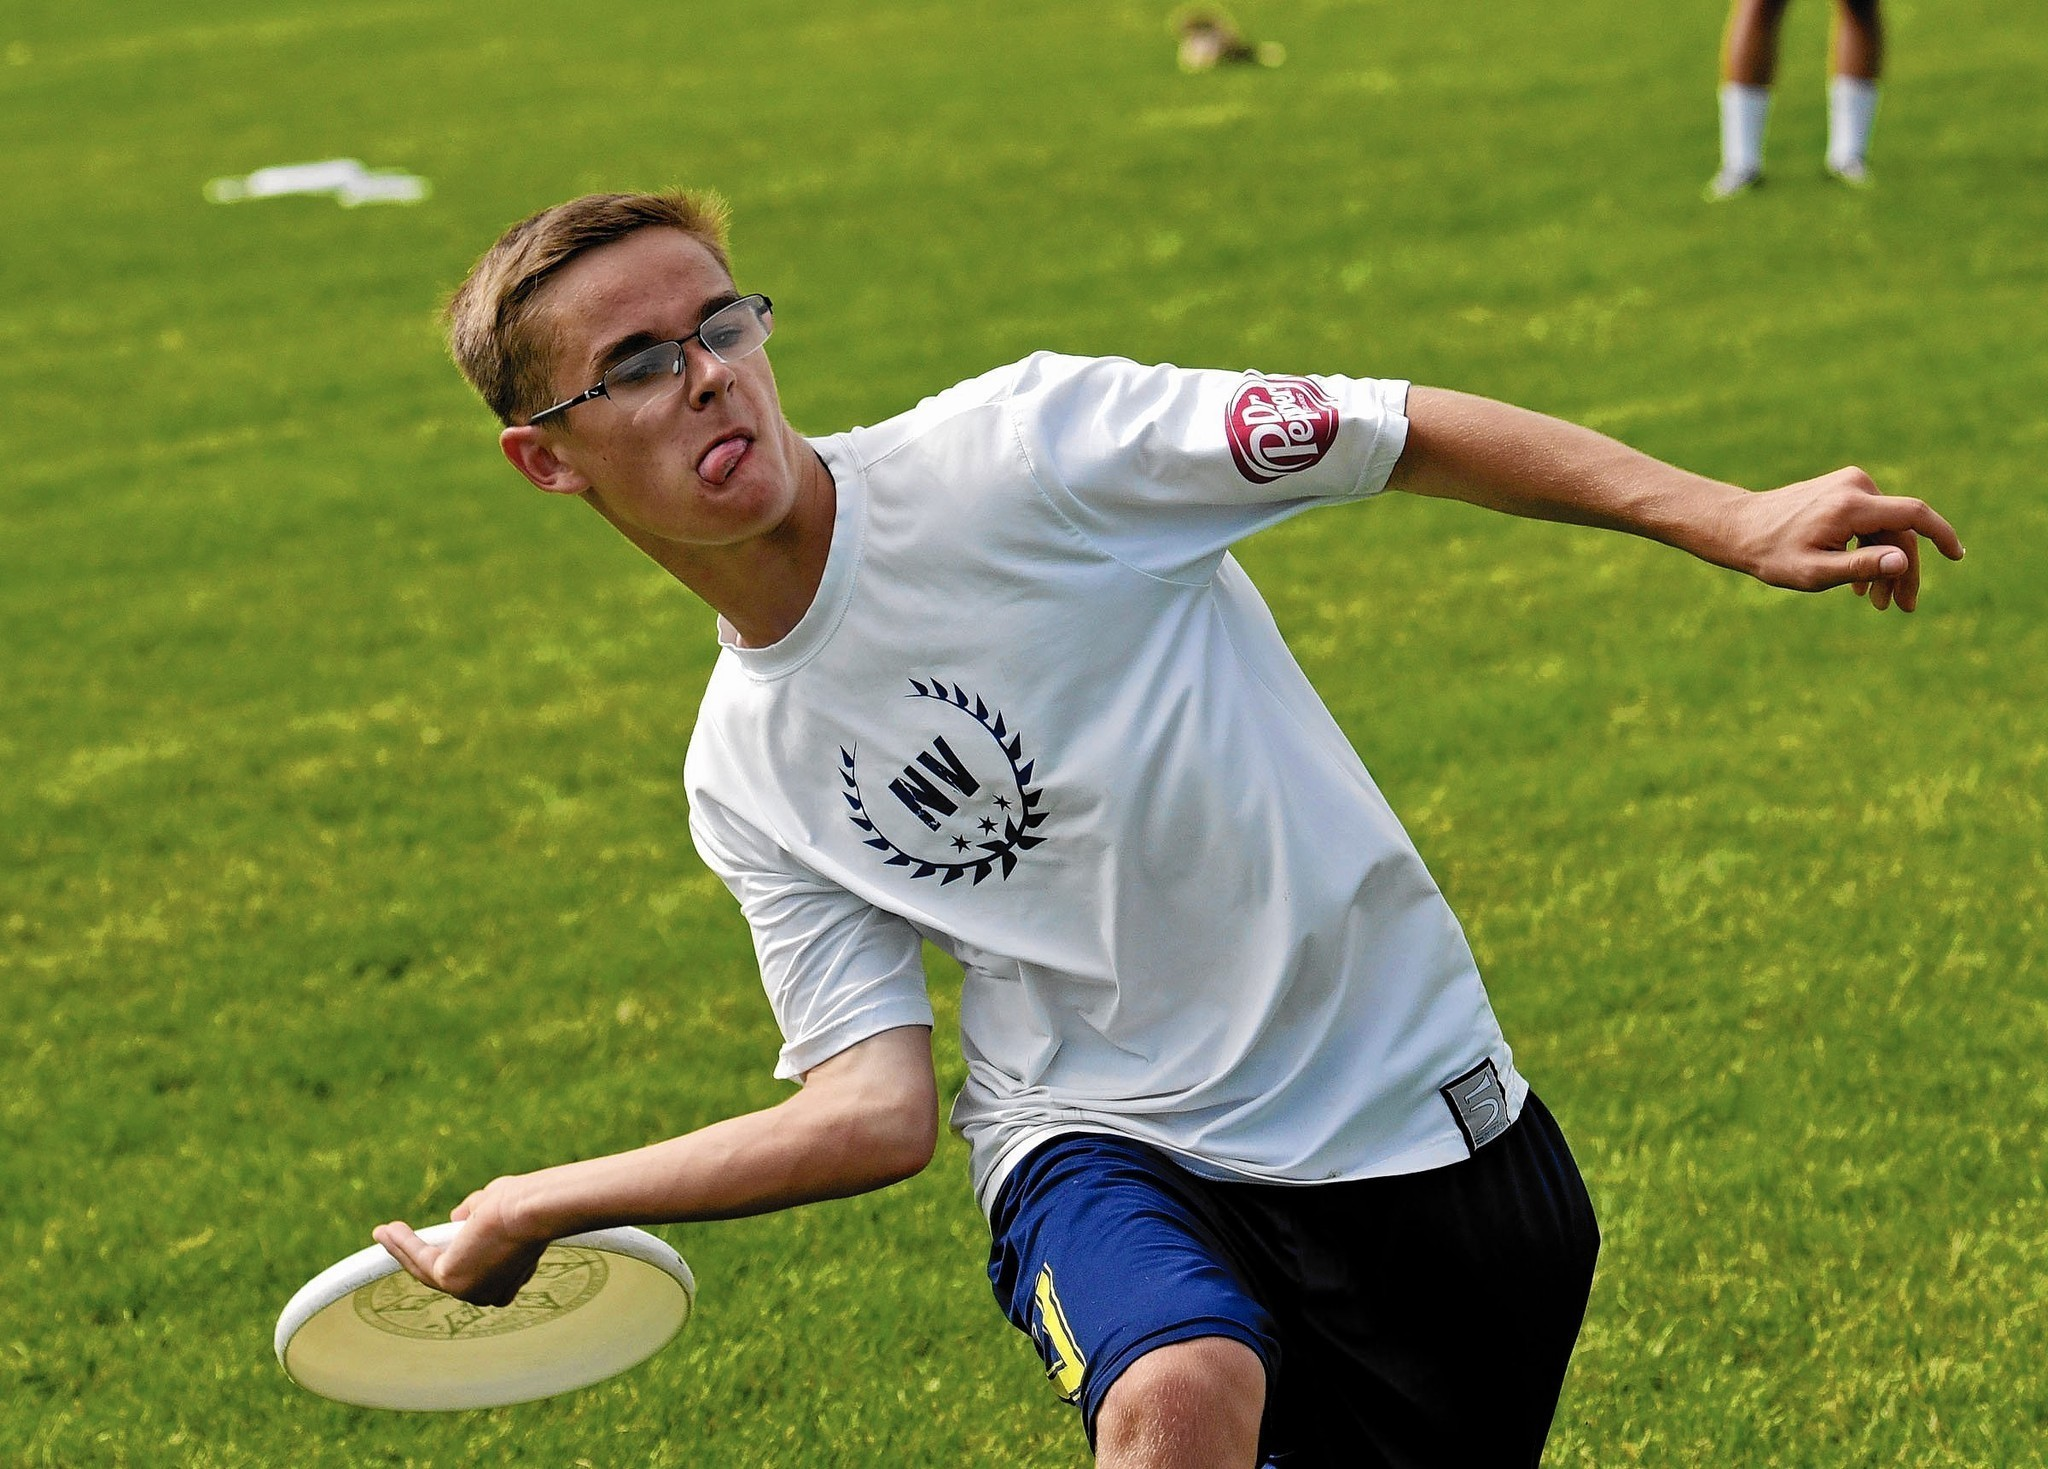 Ultimate Frisbee growing in Naperville - Naperville Sun